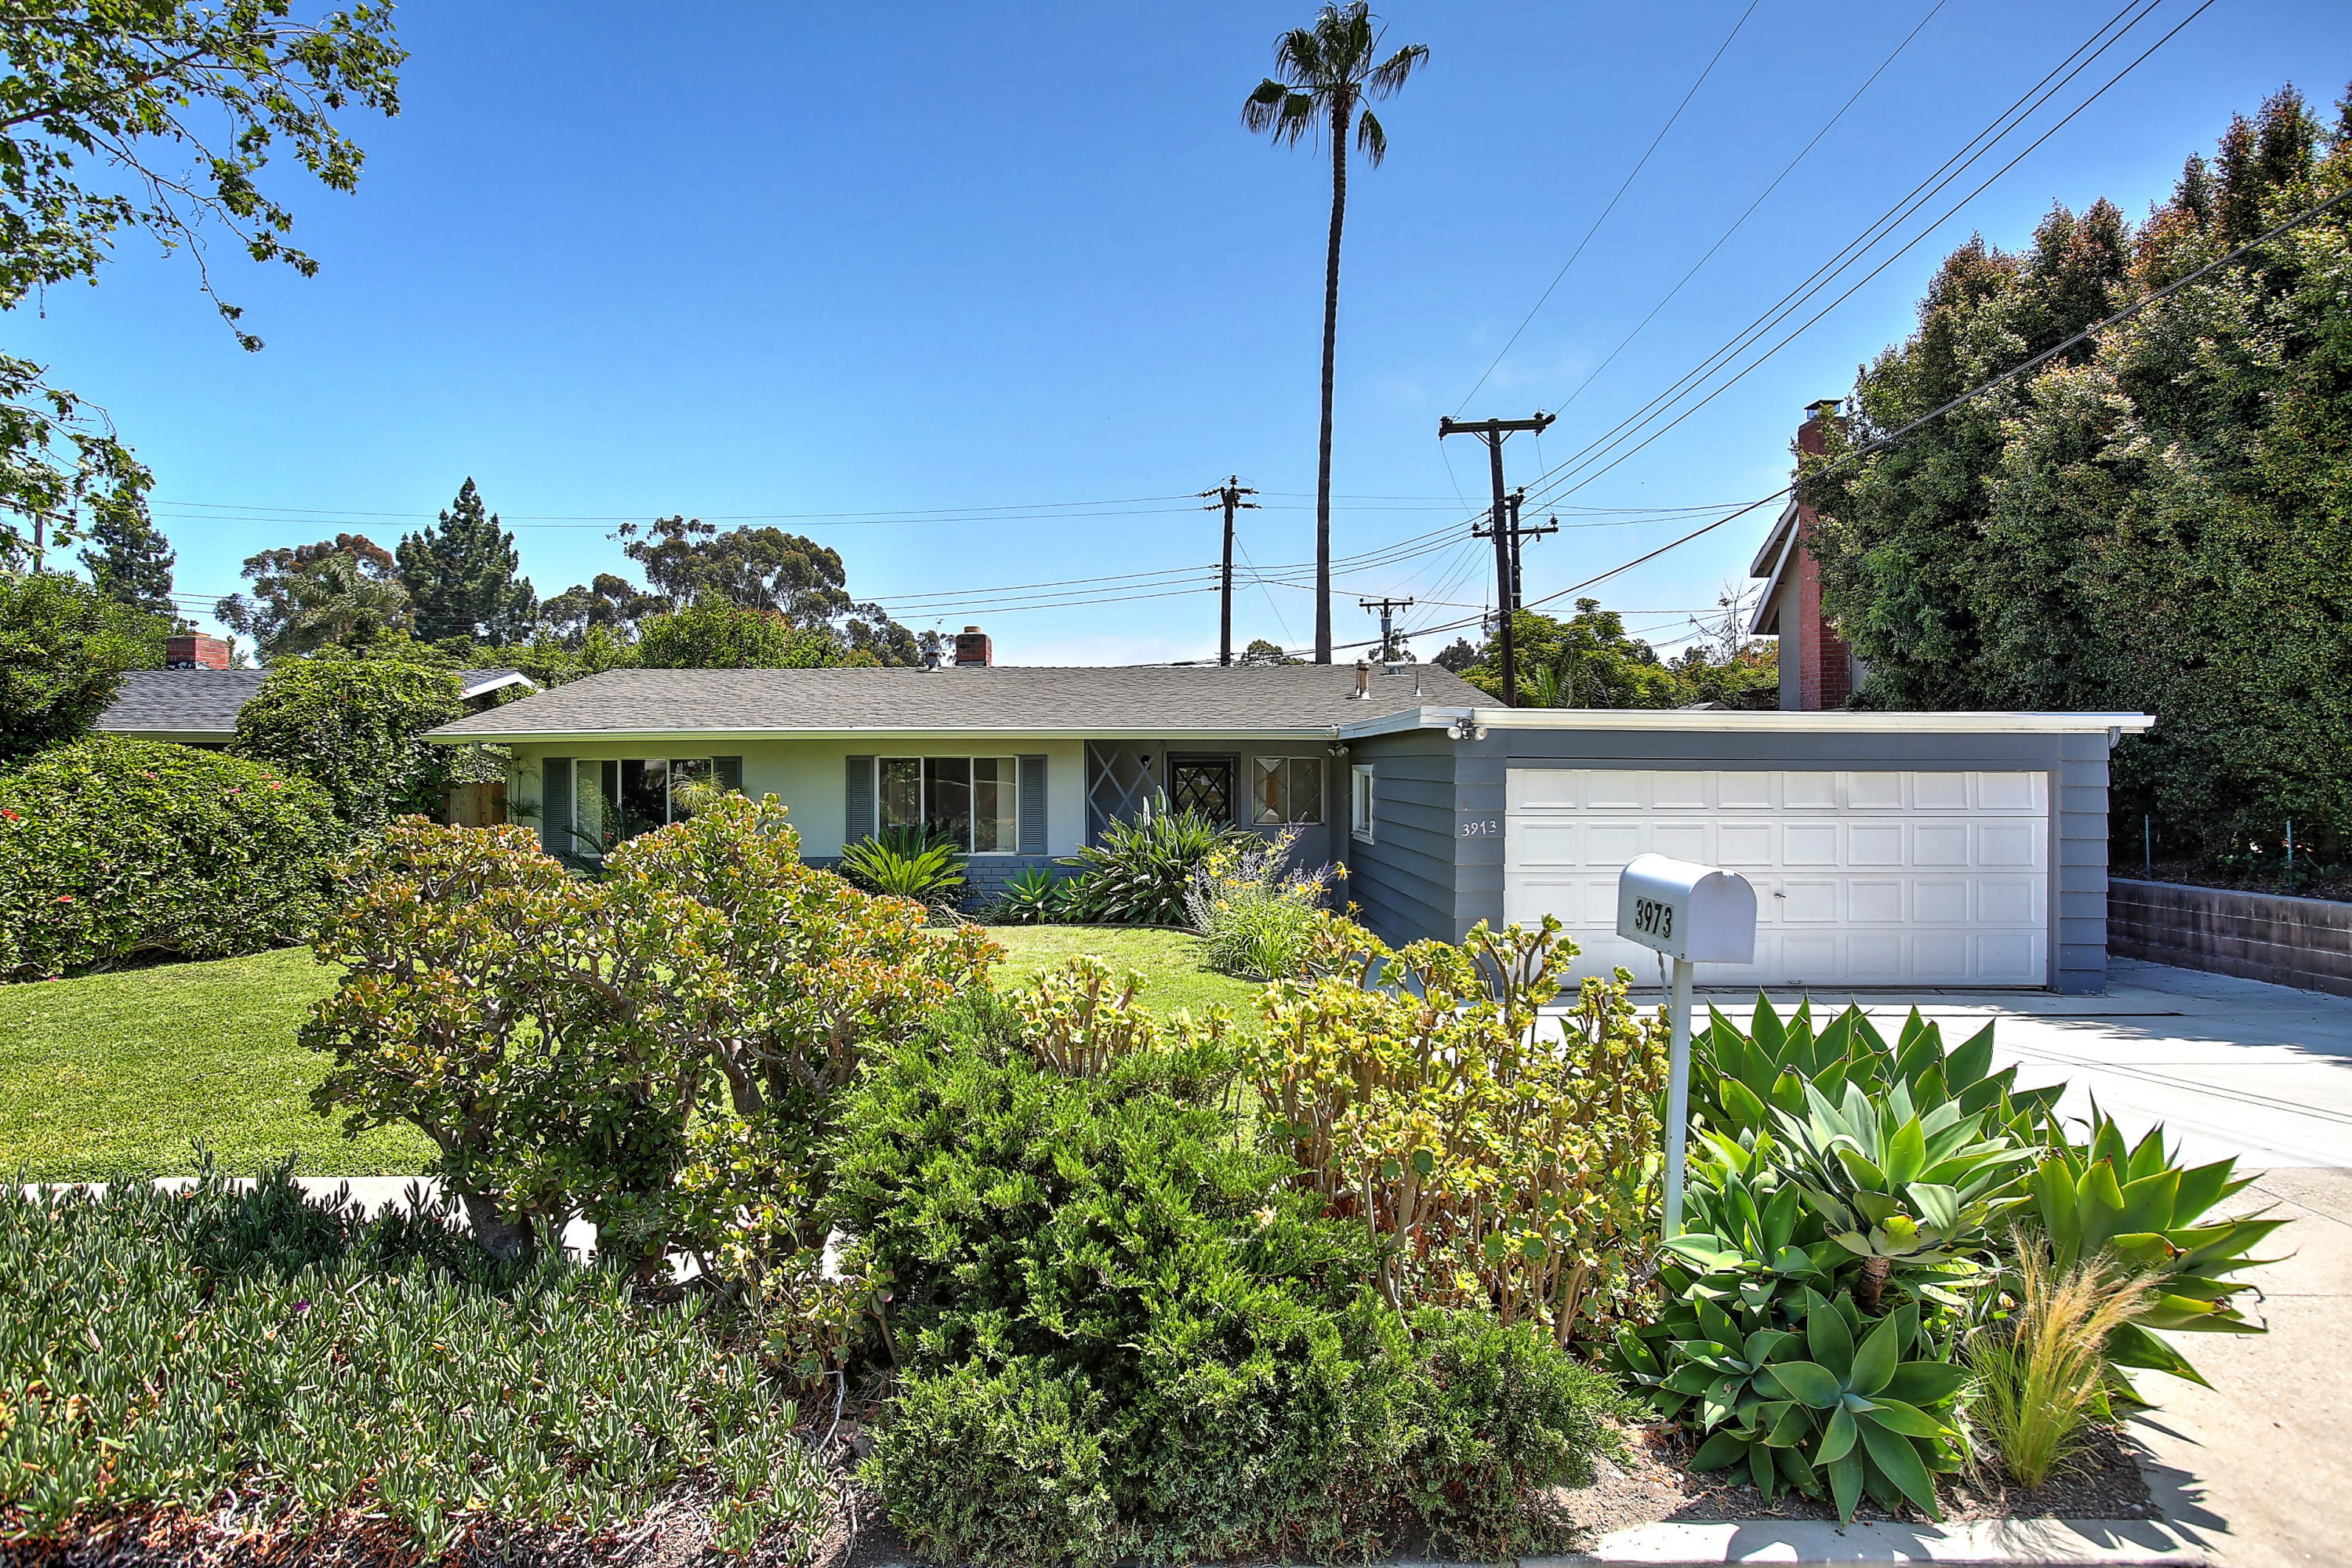 Property photo for 3973 Maricopa Dr Santa Barbara, California 93110 - 18-2299